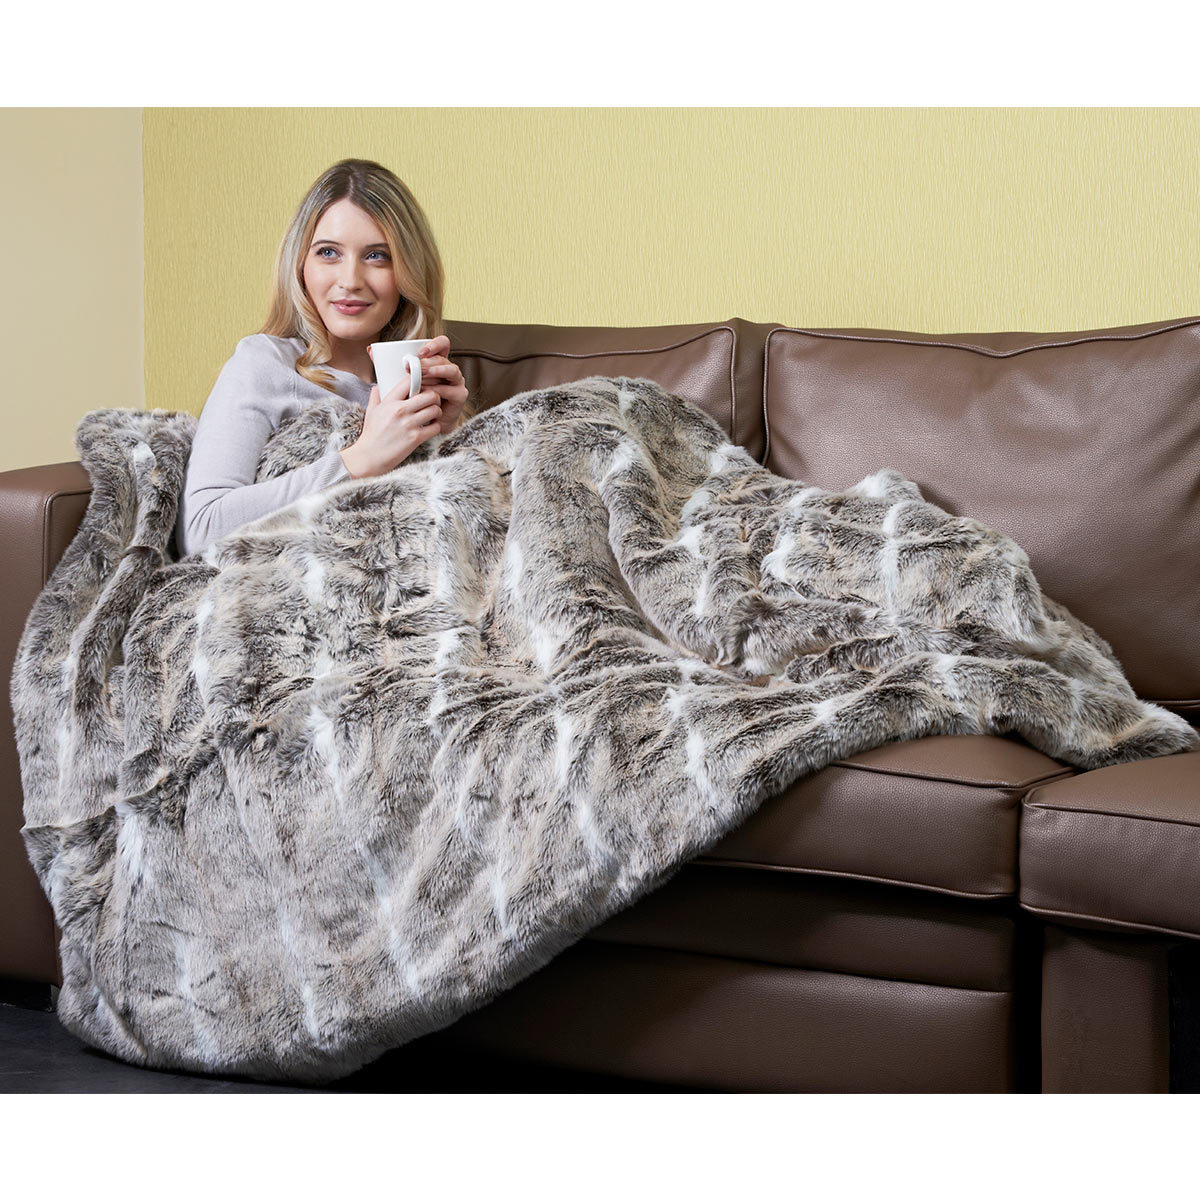 Dreamland Relaxwell Deluxe Faux Fur Heated Throw Costco Uk